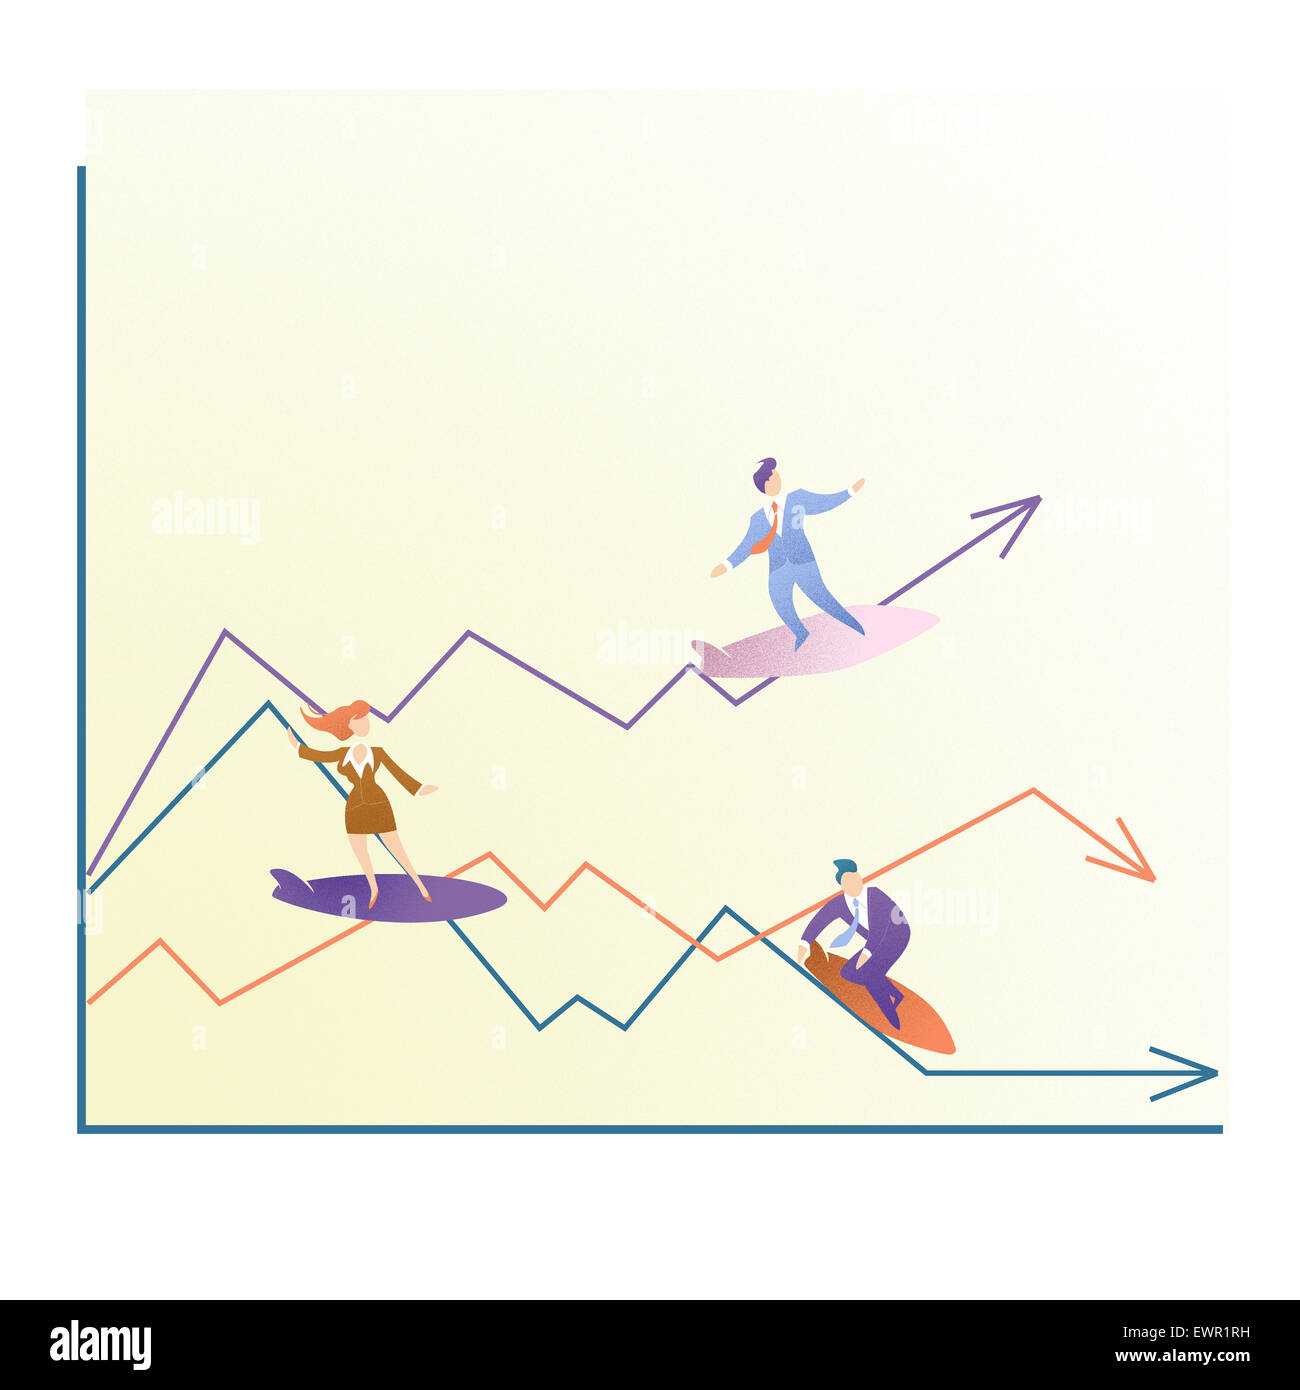 illustrative representation showing ups and downs of business - Stock Image